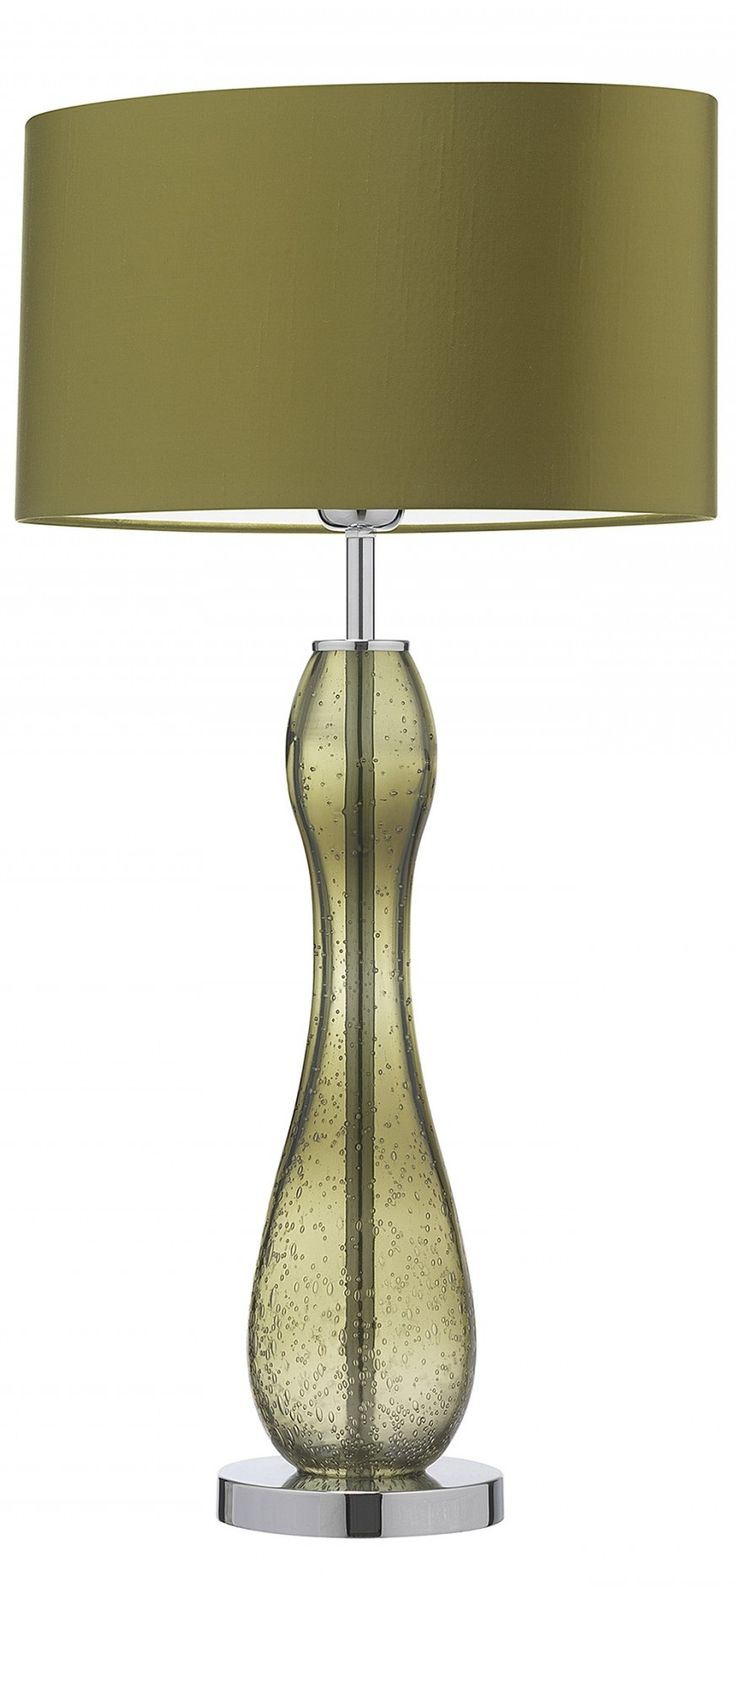 562 best table lamps images on pinterest bedroom lighting